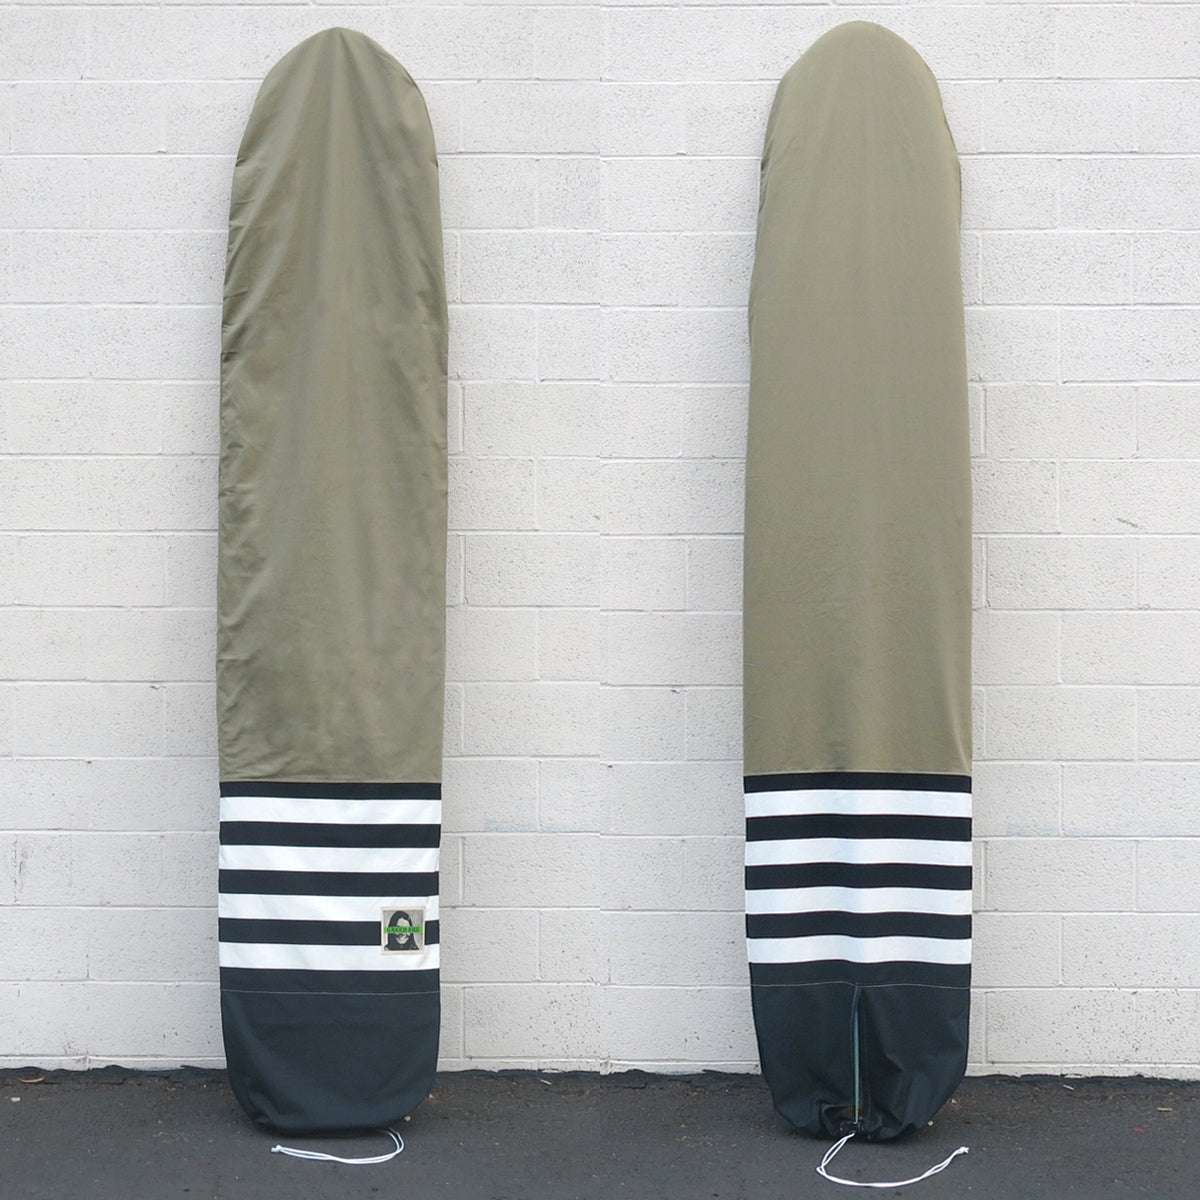 Green Fuz Fuzwar Canvas Board Bag - Longboard